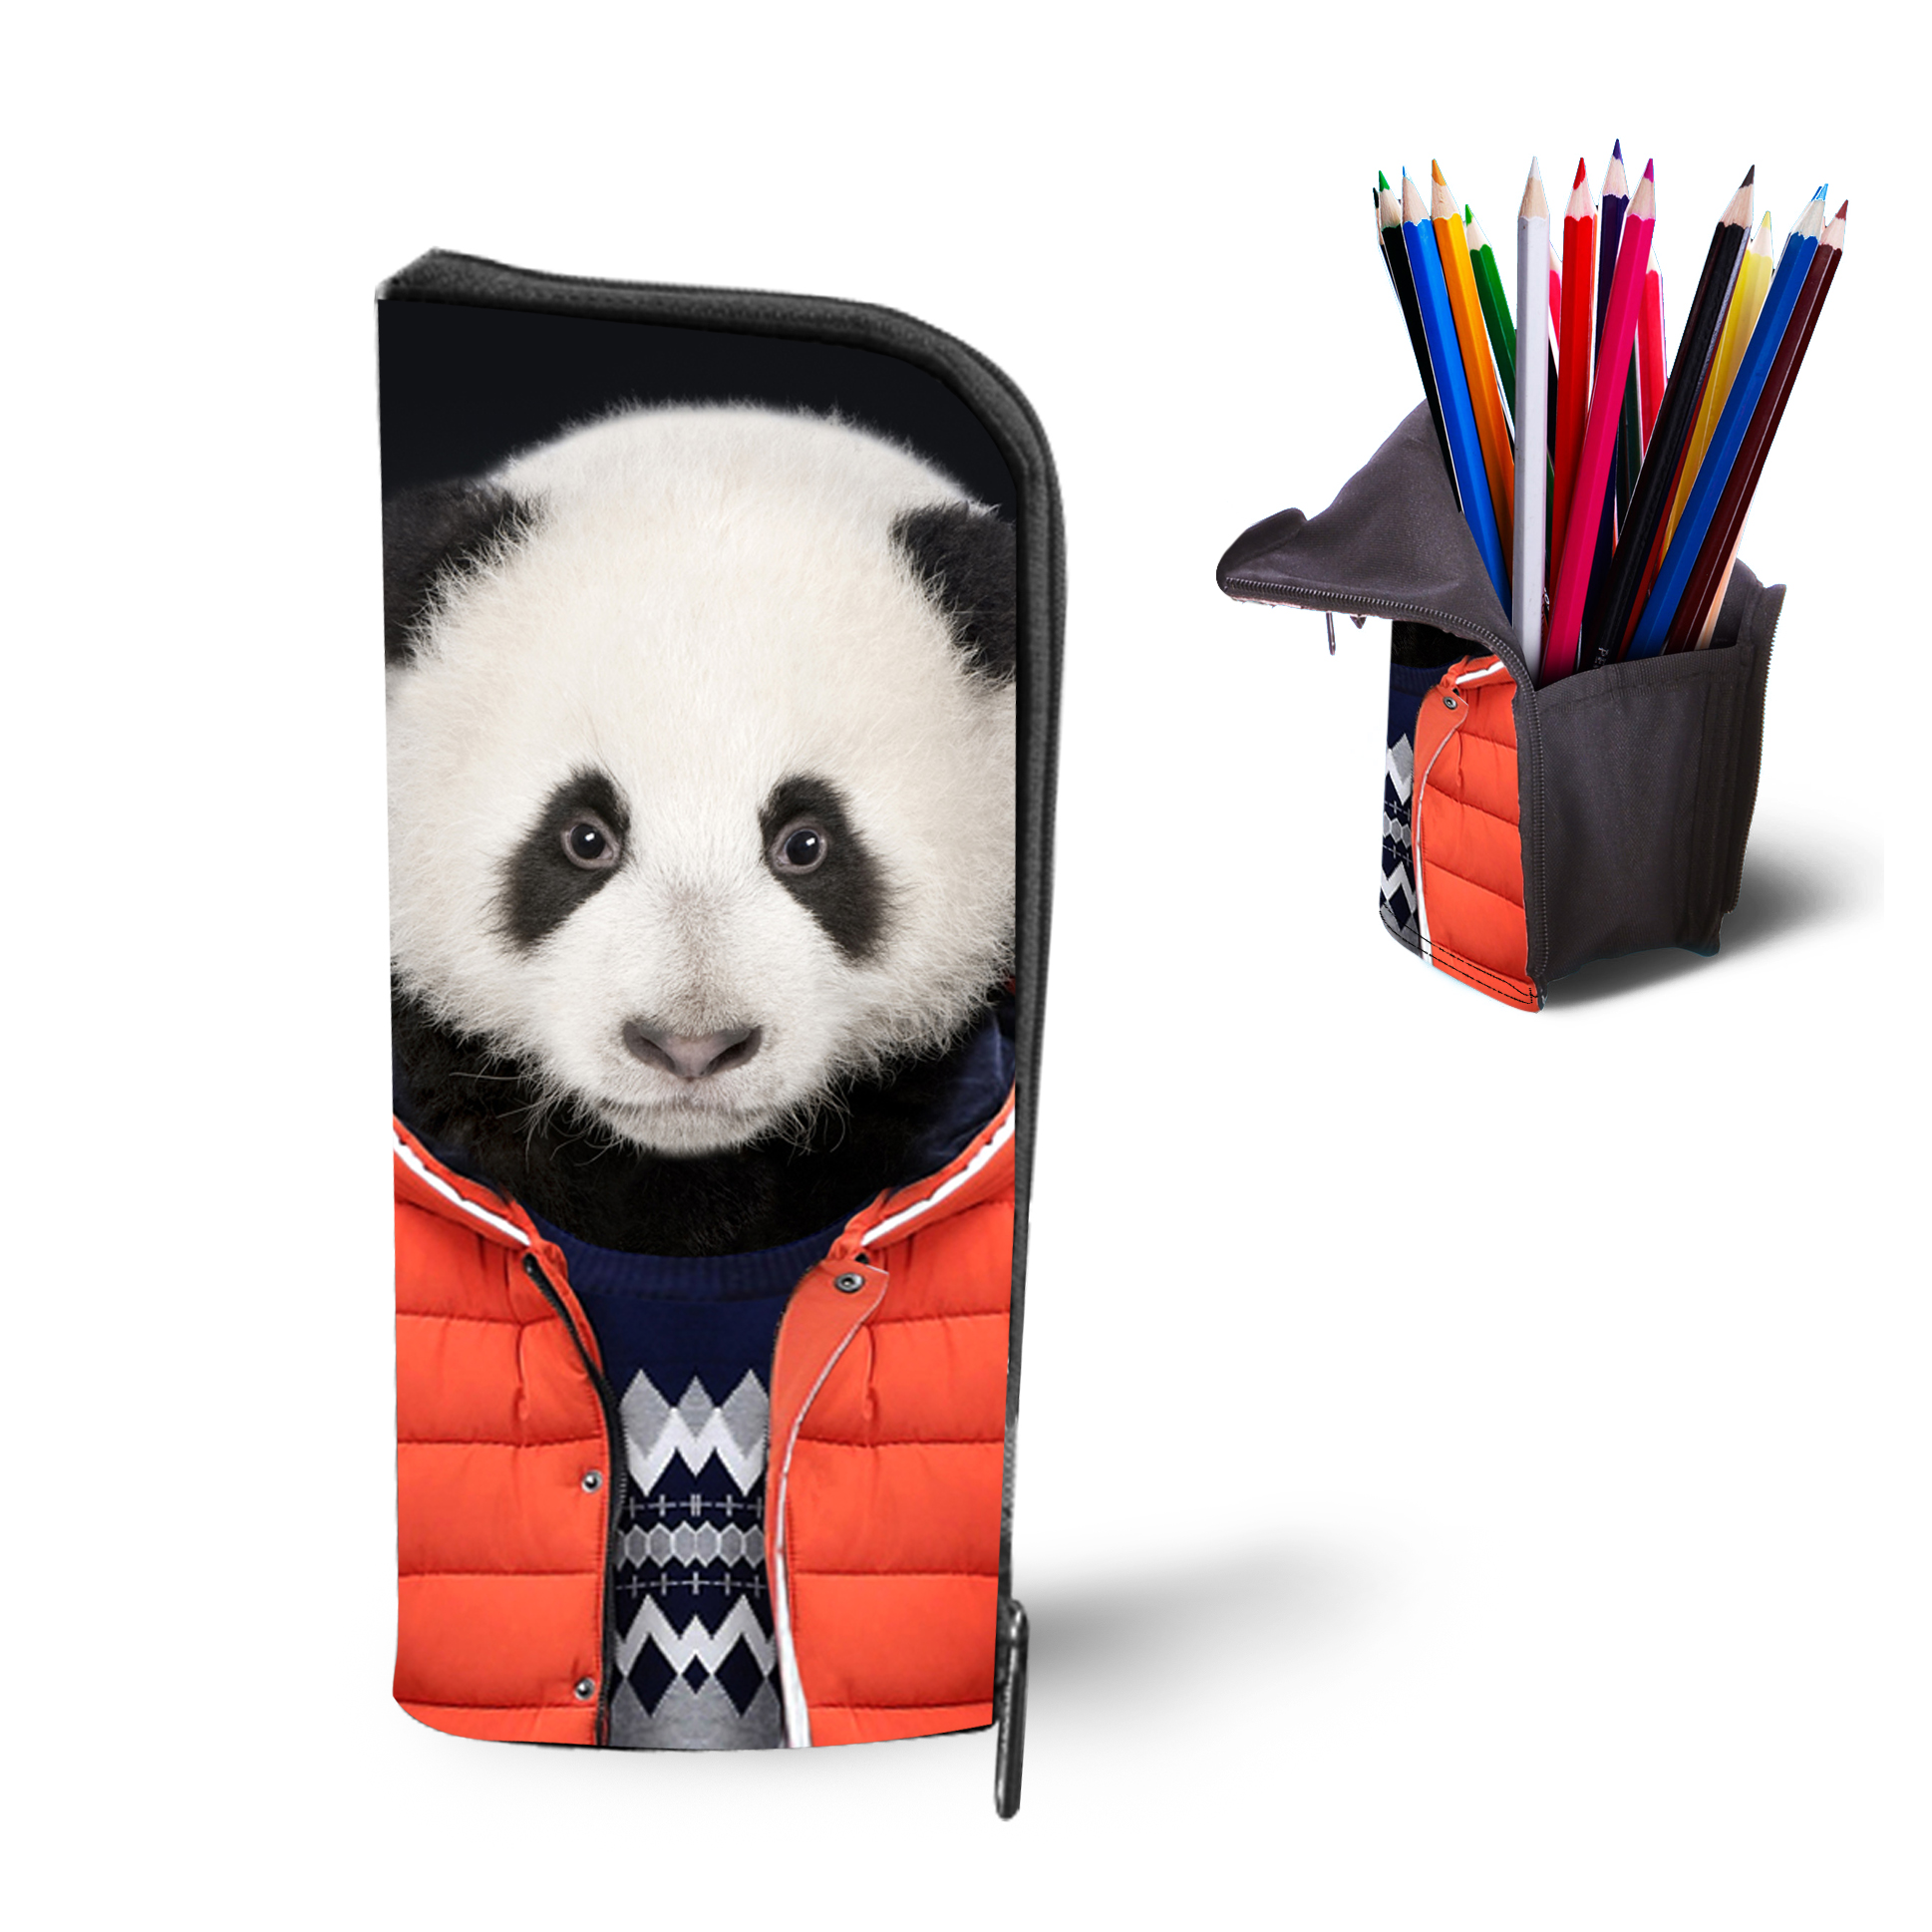 Multifunction Newmebox Pencil Box Creative Cute Pencil Cases Bag Can be Pencil Holder